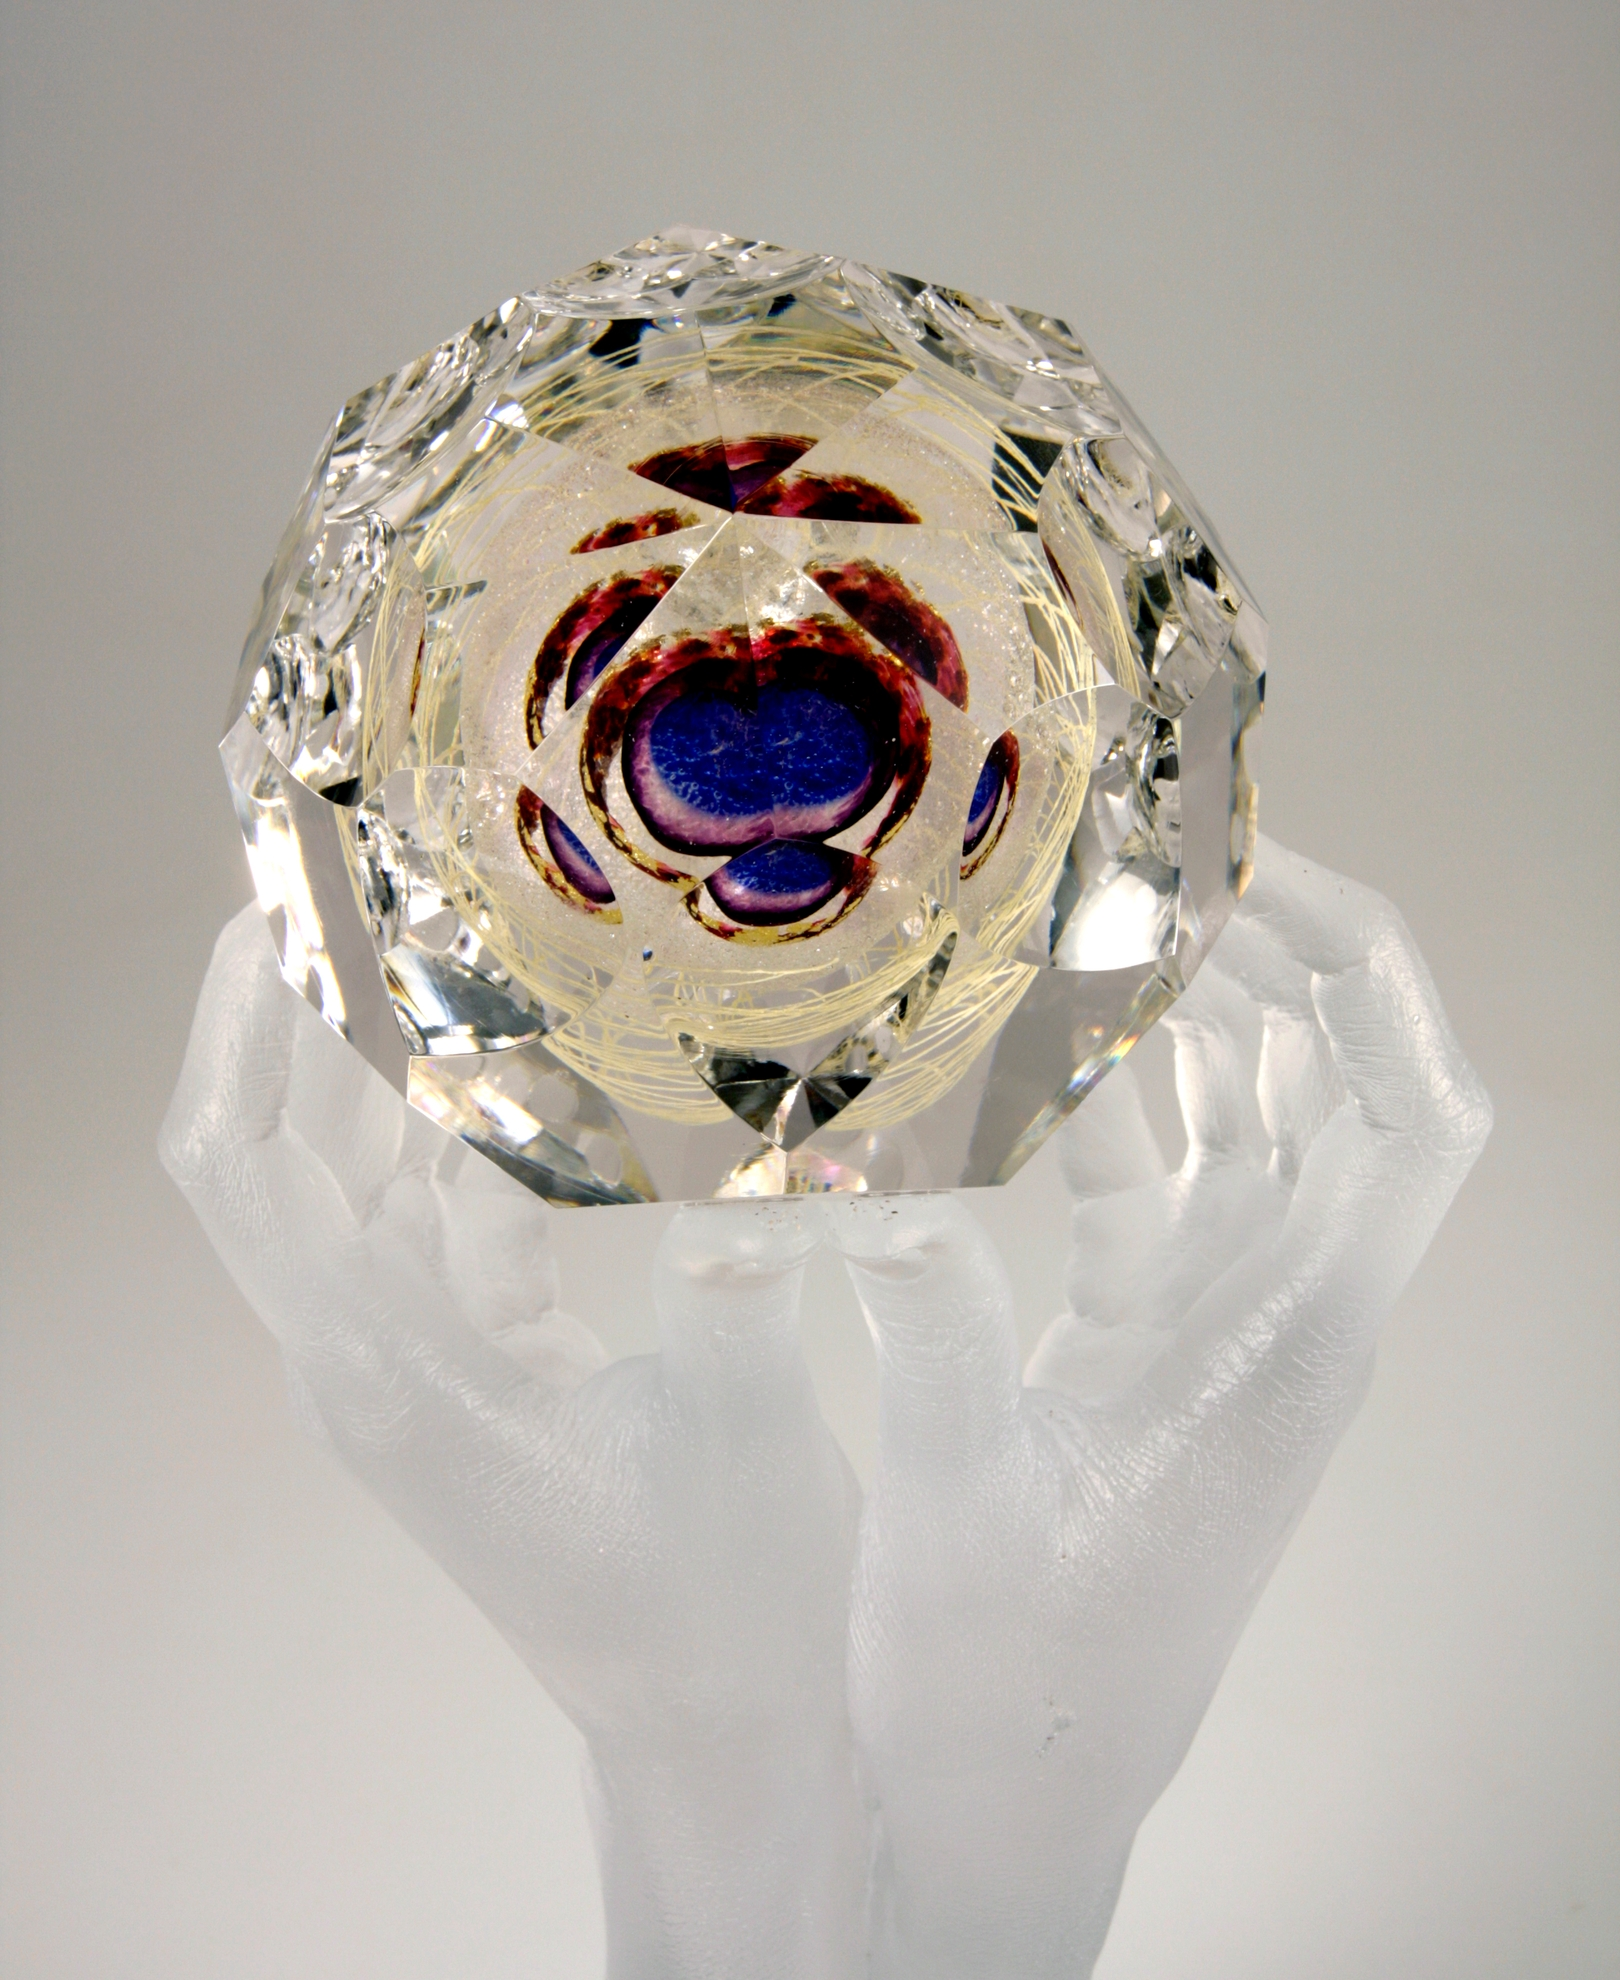 Detail of sculpture of clear glass hands holding faceted glass gem containing blue, purple, ruby, gold, and mica.